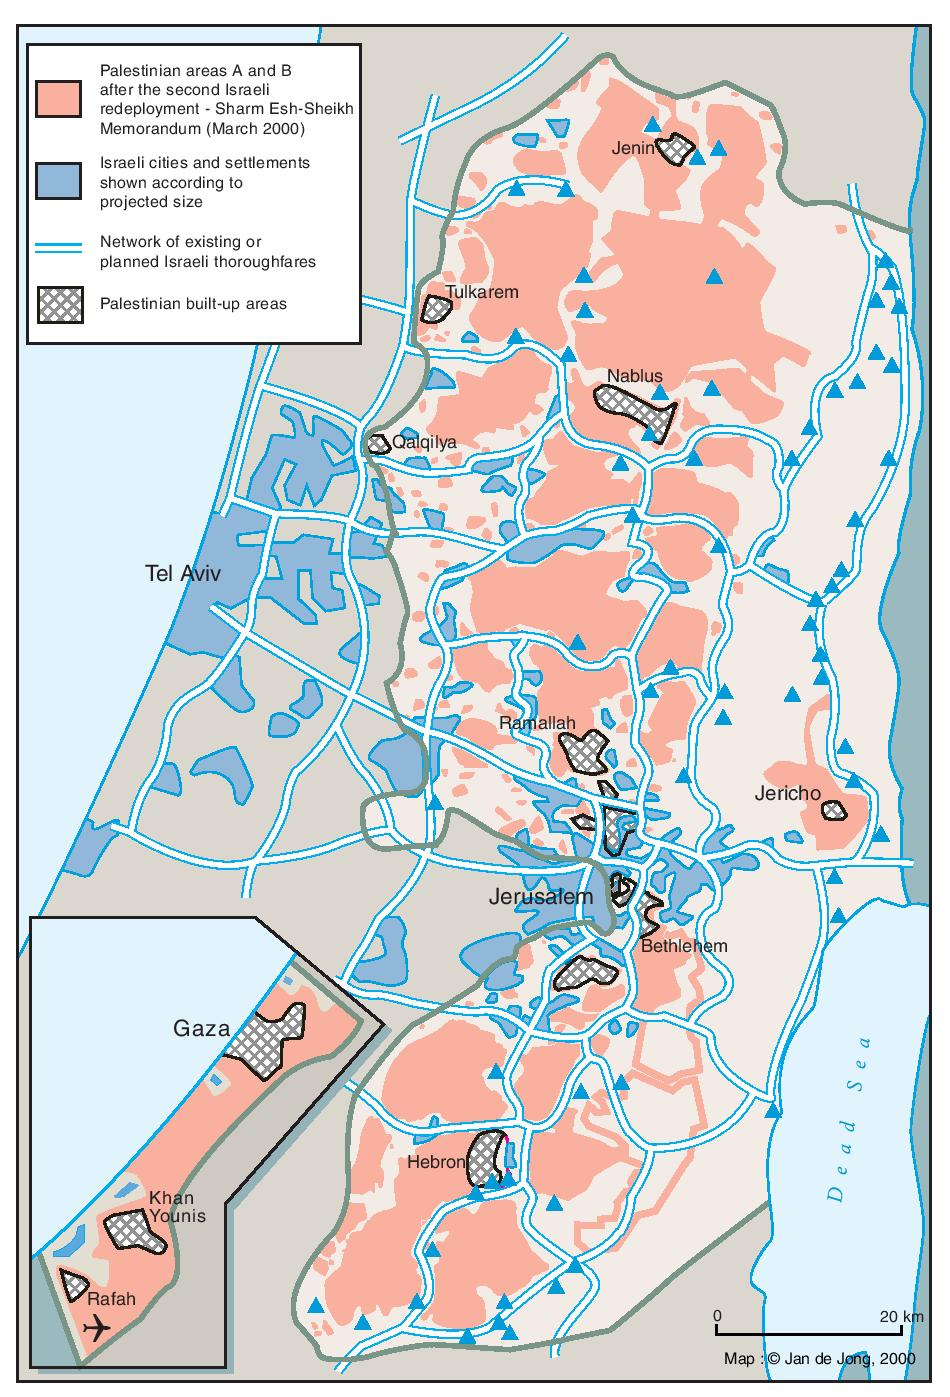 PIA - MAPS - Palestine - WEST BANK AND GAZA STRIP, MARCH 2000 Gaza Strip Map on palestinian people, sea of galilee, oman map, tel aviv, plateau of iran map, yasser arafat, himalayas map, palestinian territories, east jerusalem, bangladesh map, greece map, united kingdom map, world map, jordan river, morocco map, middle east political map, west bank, six-day war, western sahara map, indonesia map, sinai peninsula map, ethiopia map, iberian peninsula map, yom kippur war, austria map, golan heights, iudaea province map, philippines map, jerusalem map, oslo accords, yemen map, sinai peninsula, western wall, portugal map,